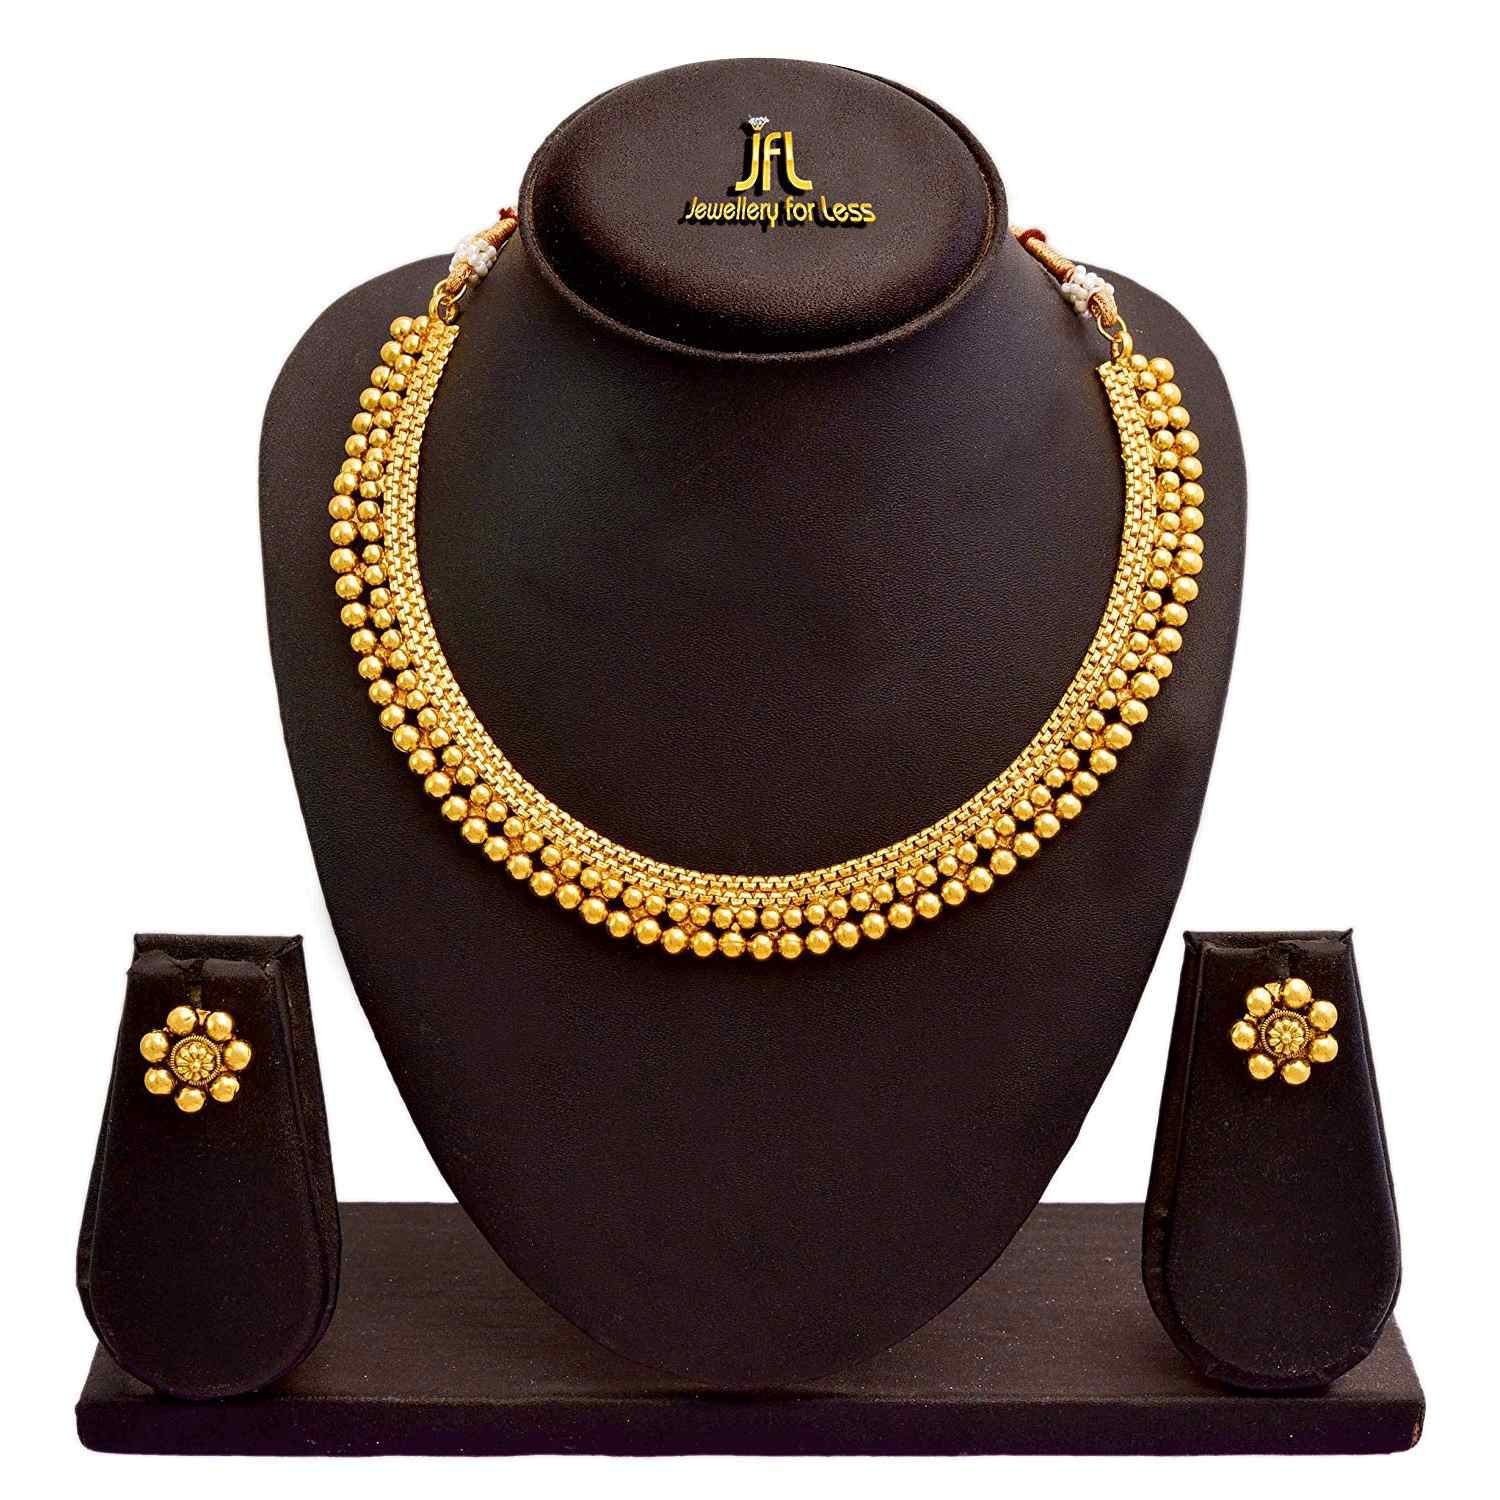 JFL - Traditional and Ethnic One Gram Gold Plated Bead Designer Necklace Set with Earring for Girls & Women.